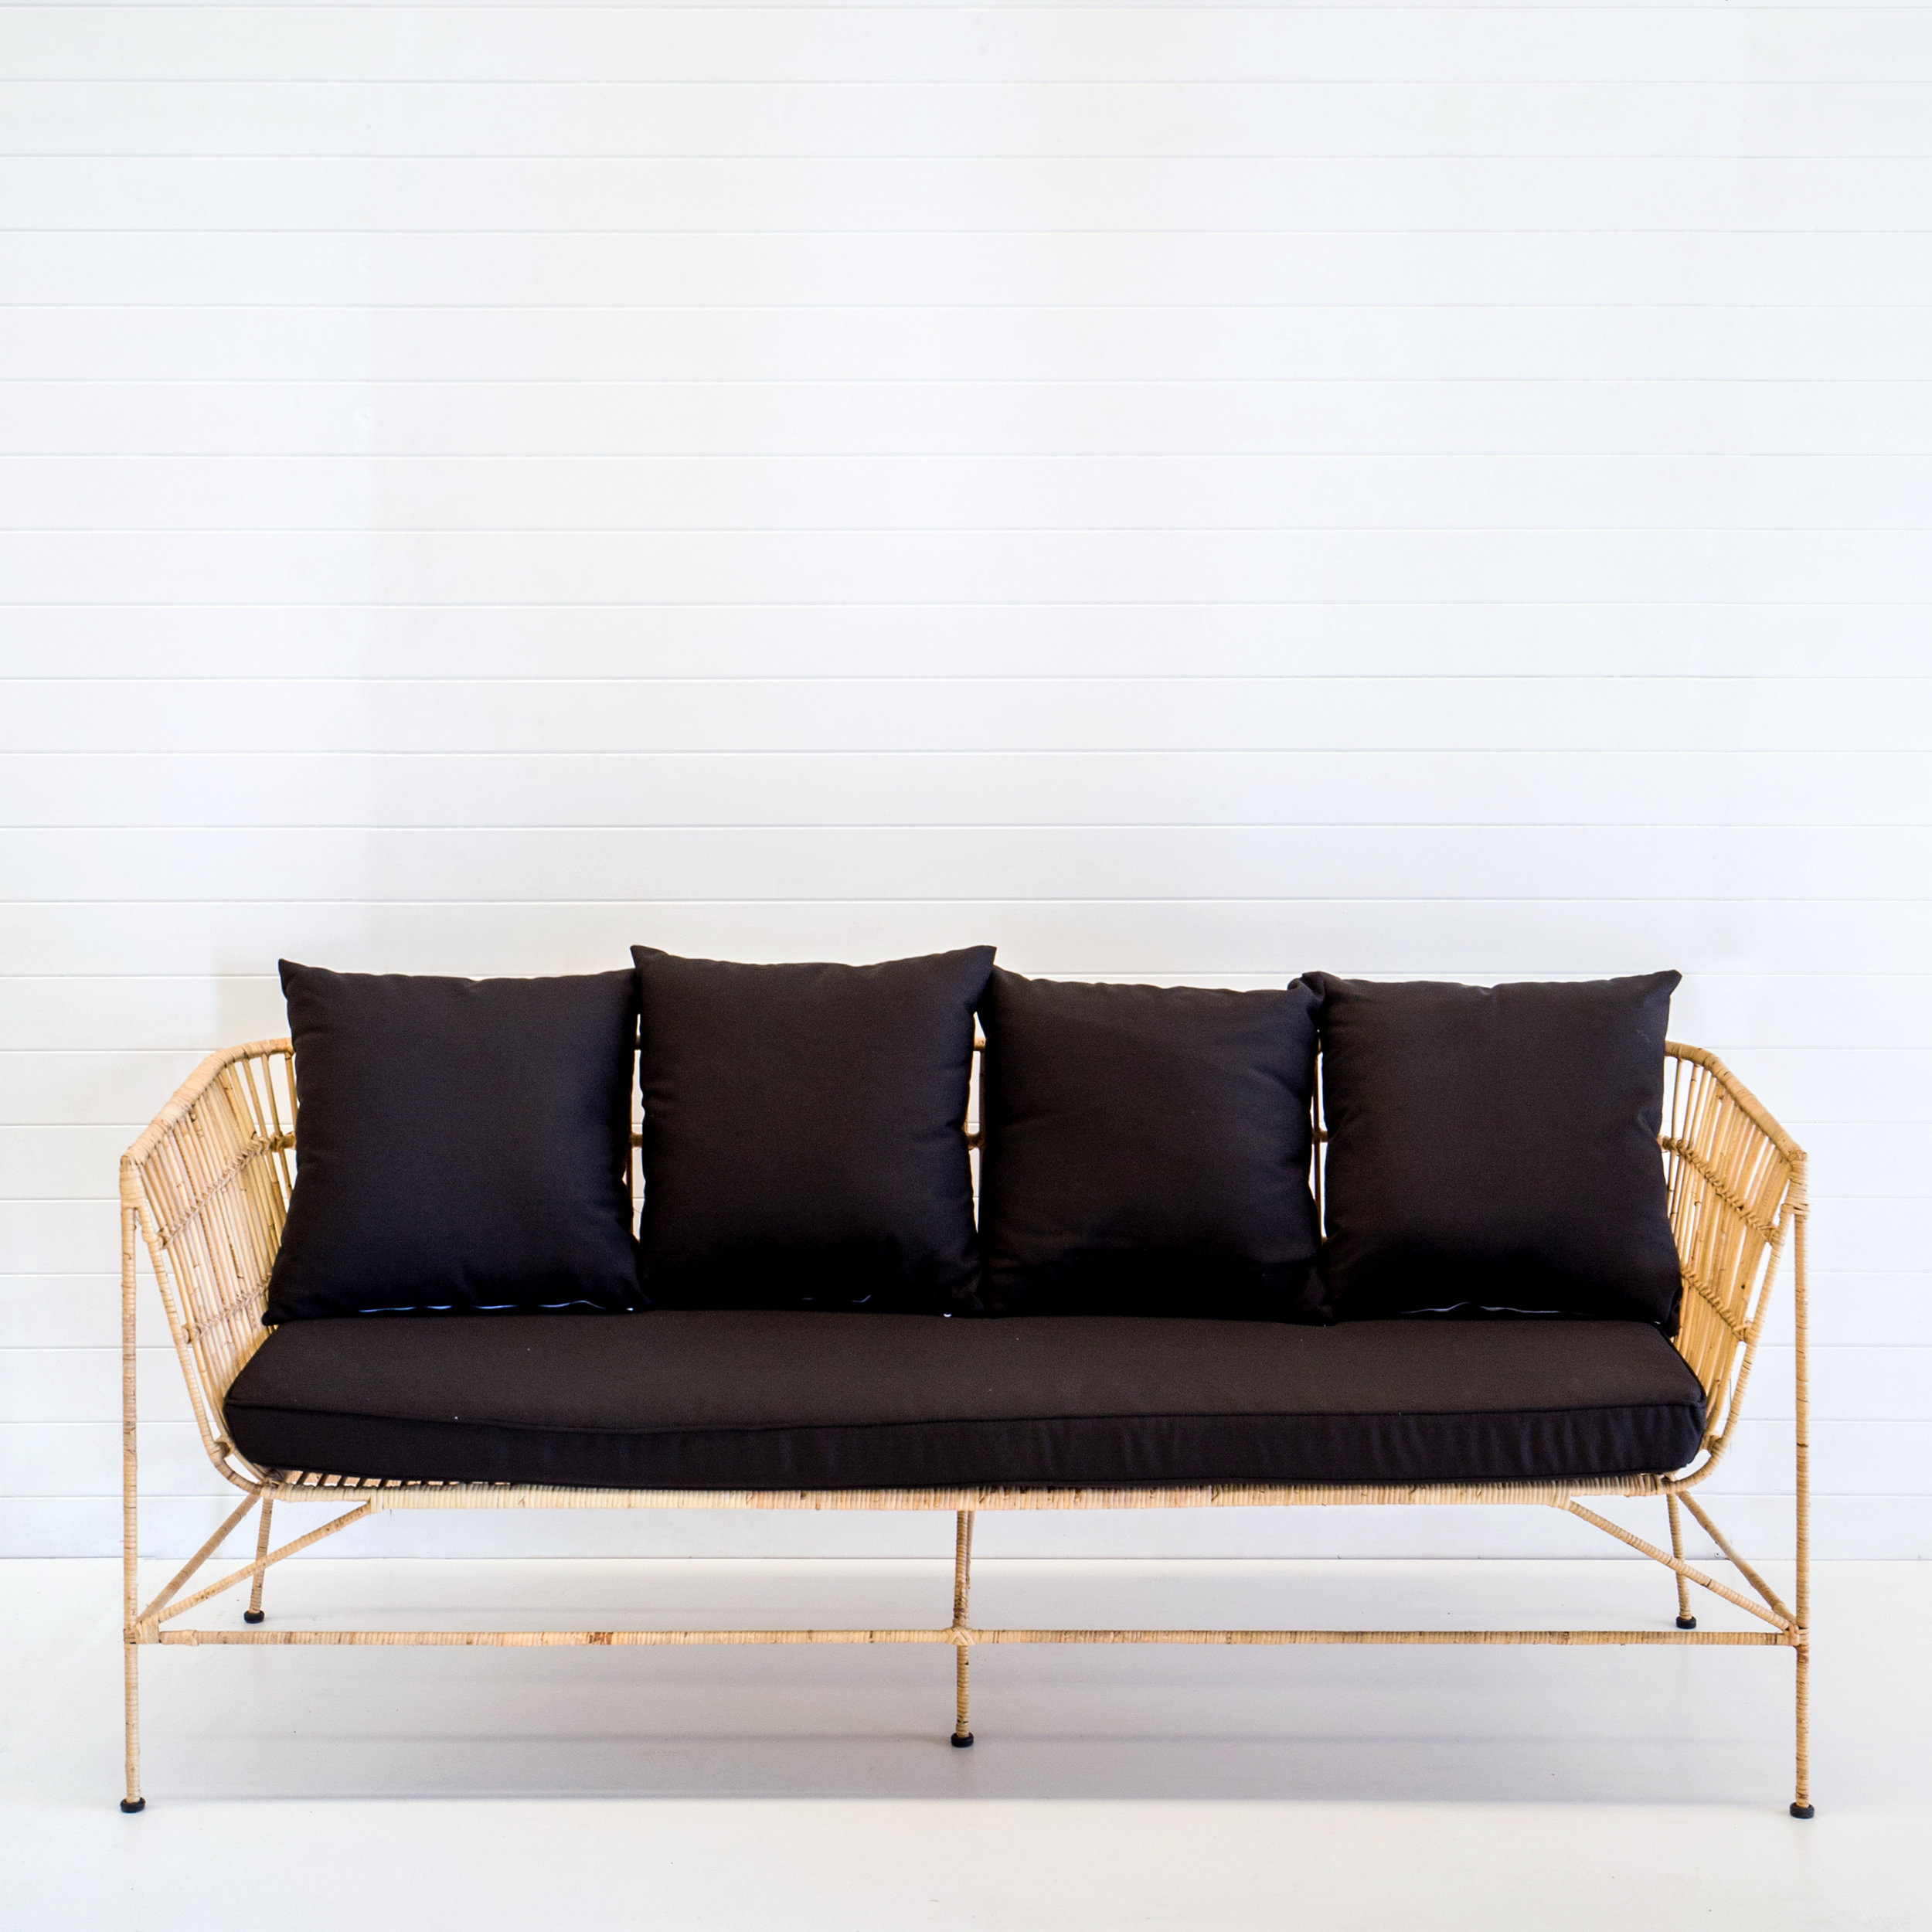 INDIE NATURAL 3-SEATER SOFA WITH BLACK CUSHIONS